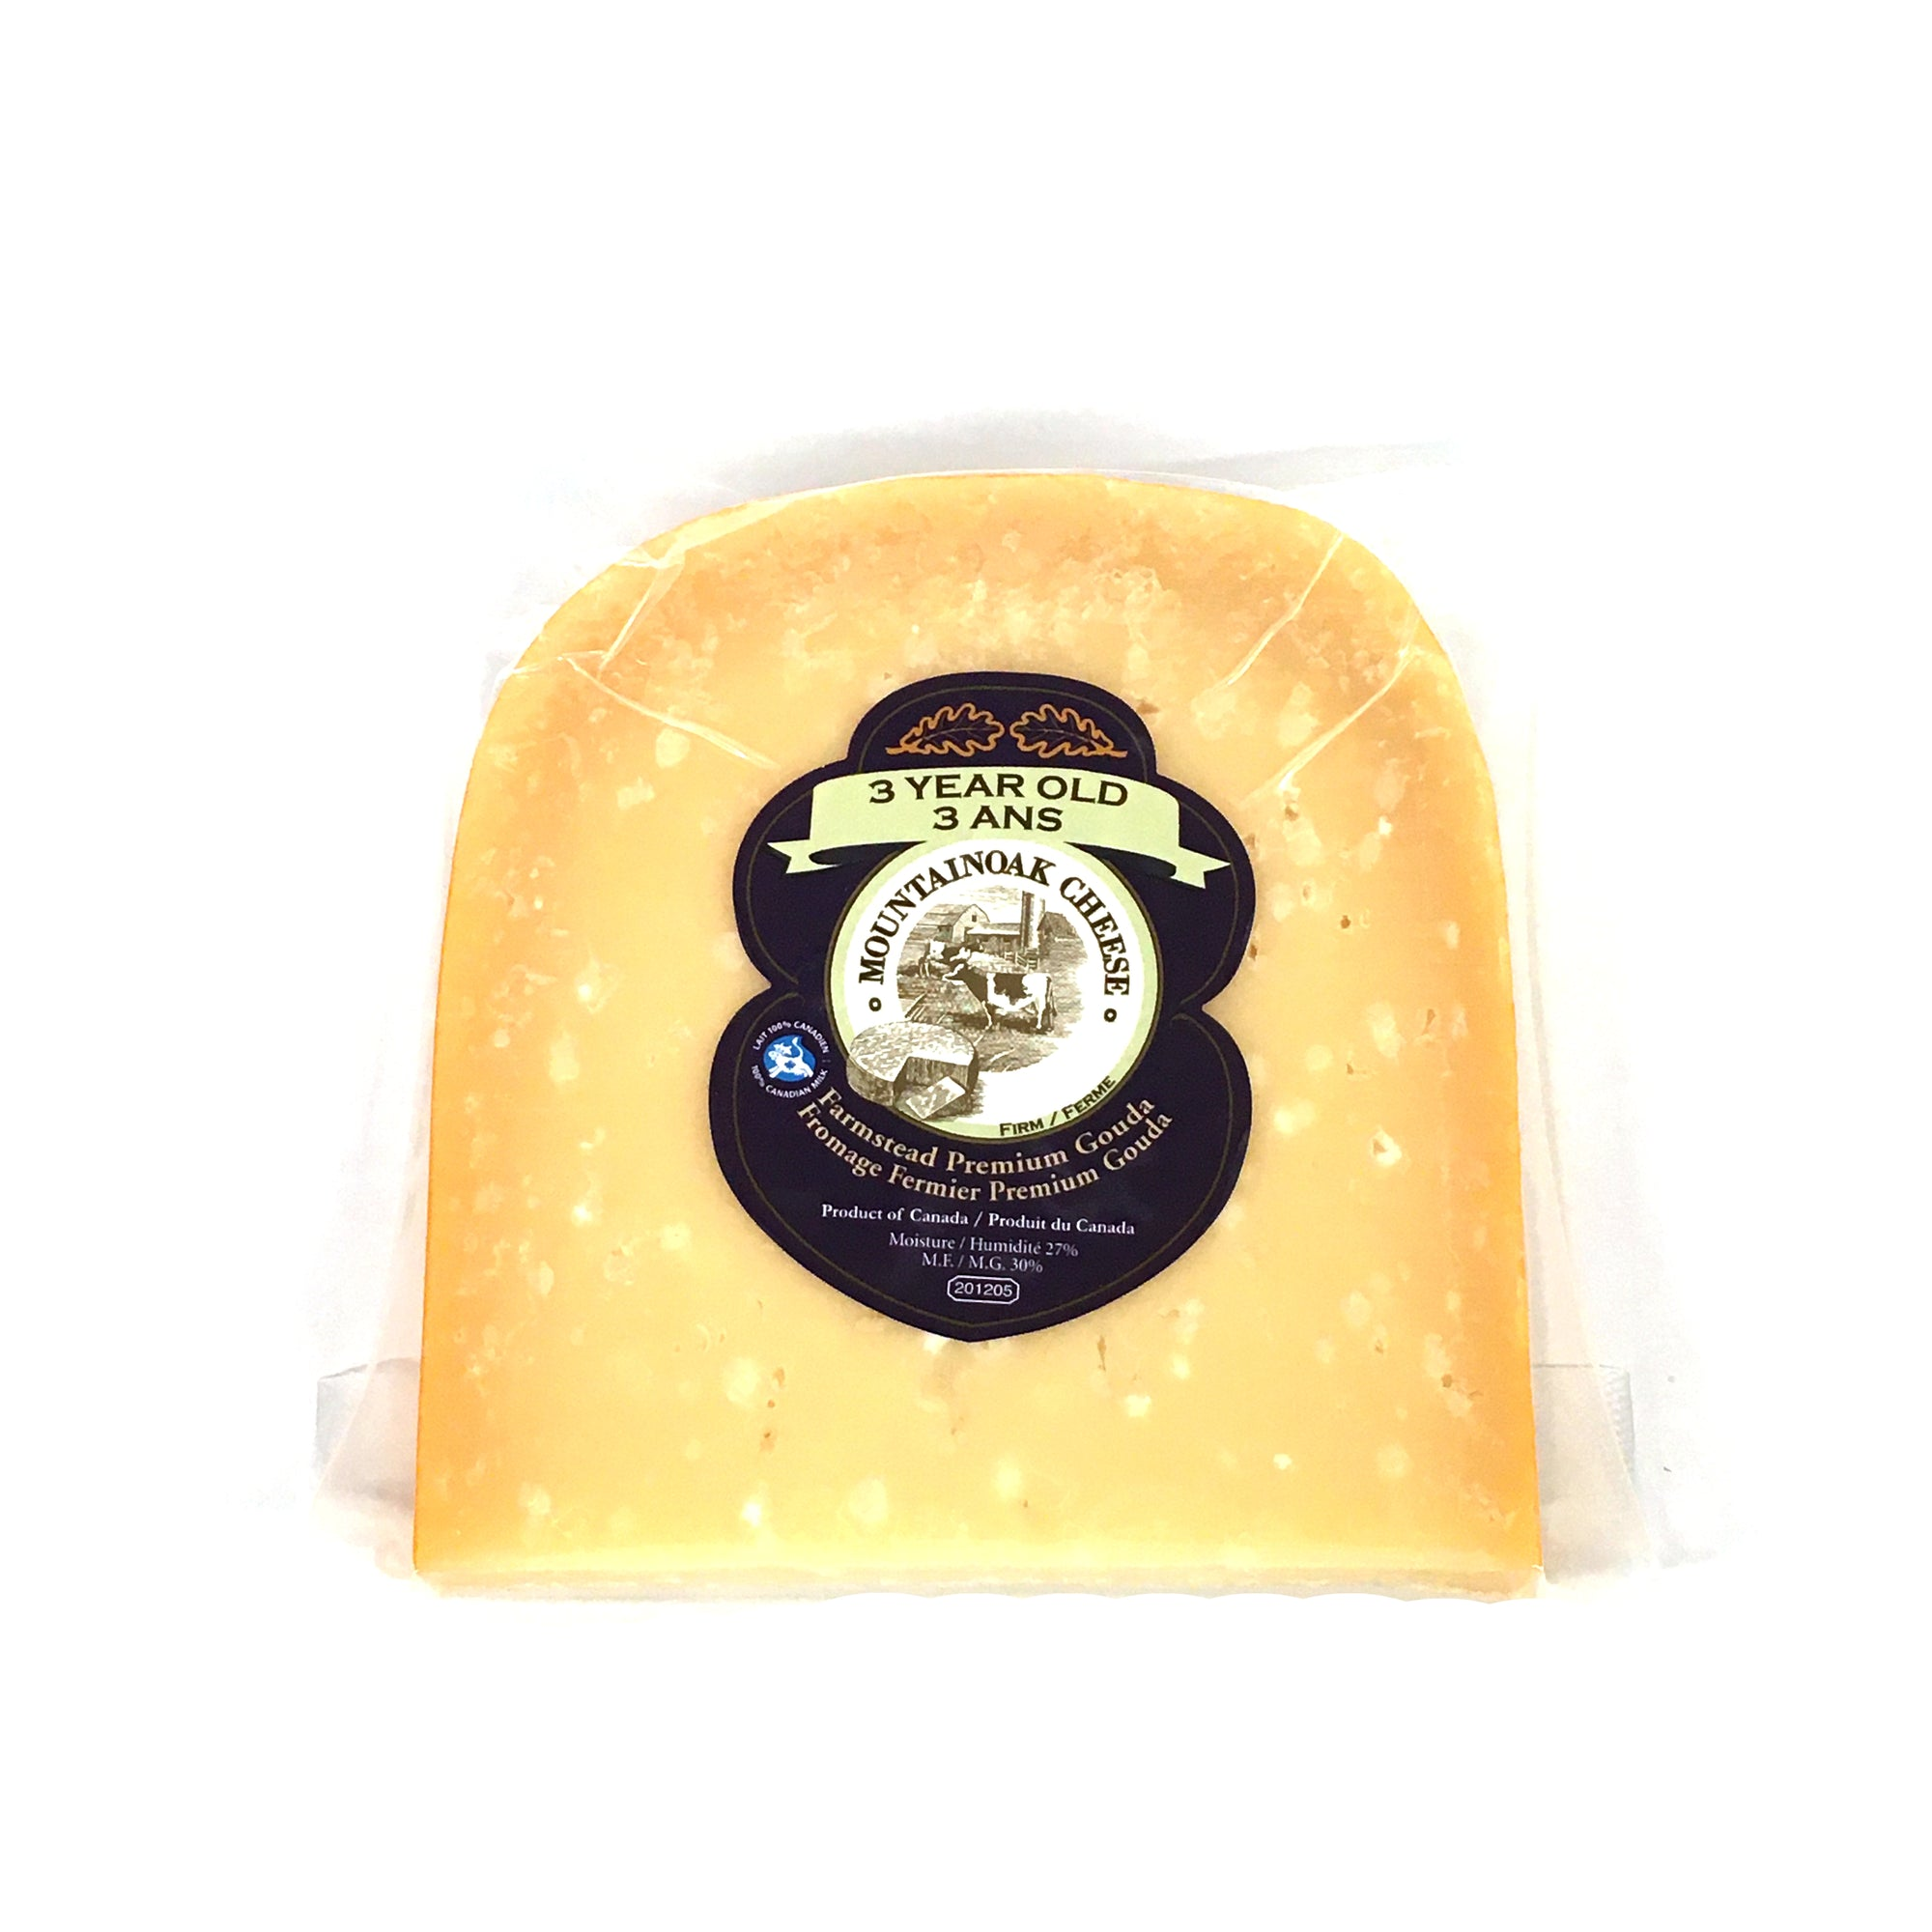 Mountain Oak Cheese Gouda 3 Year Old